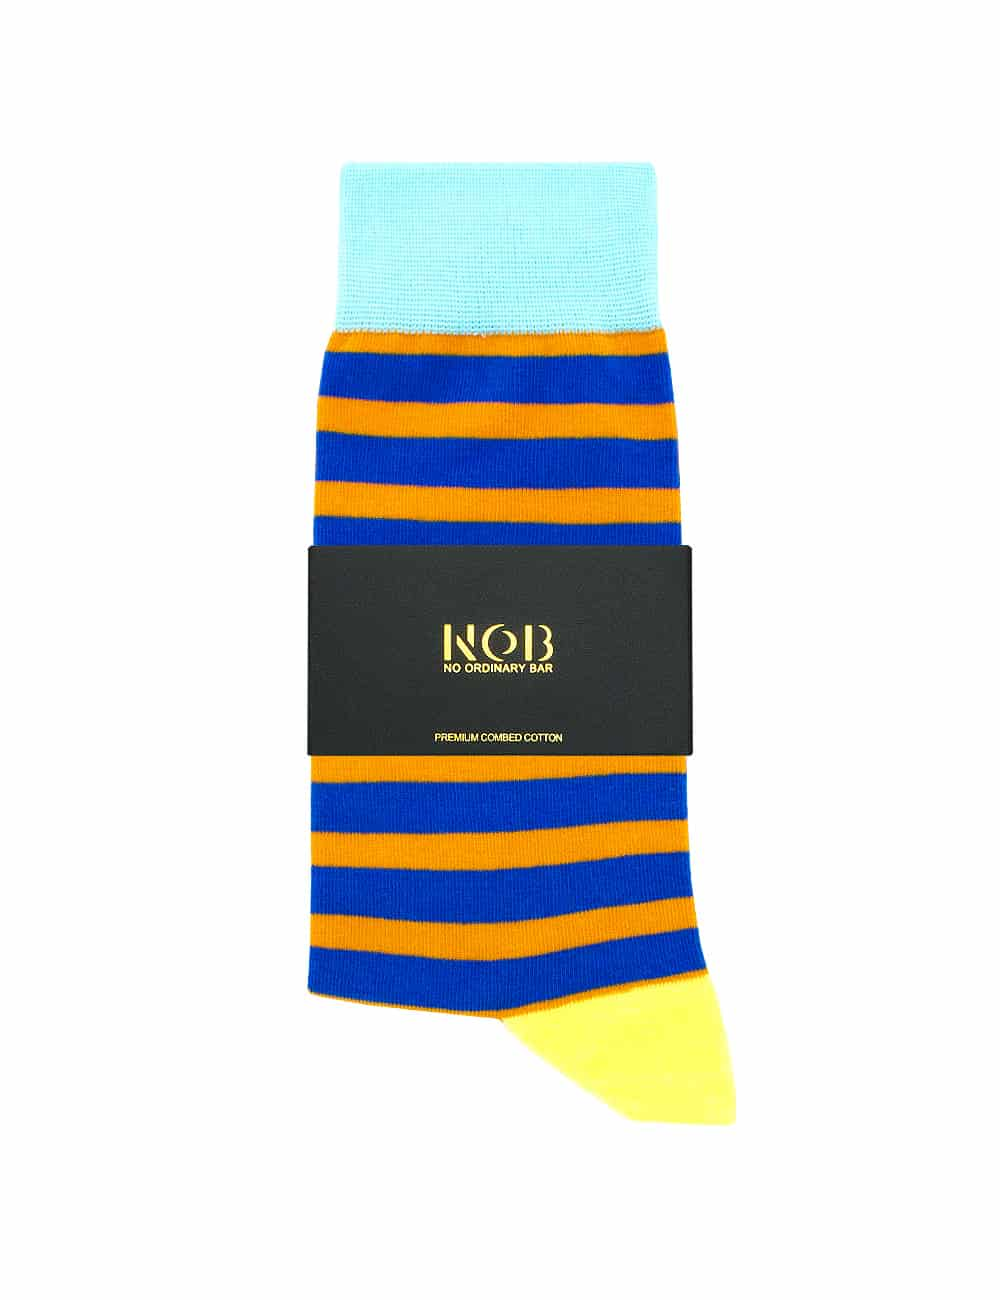 Orange and Blue Stripes Crew Socks made with Premium Combed Cotton SOC3A.NOB1